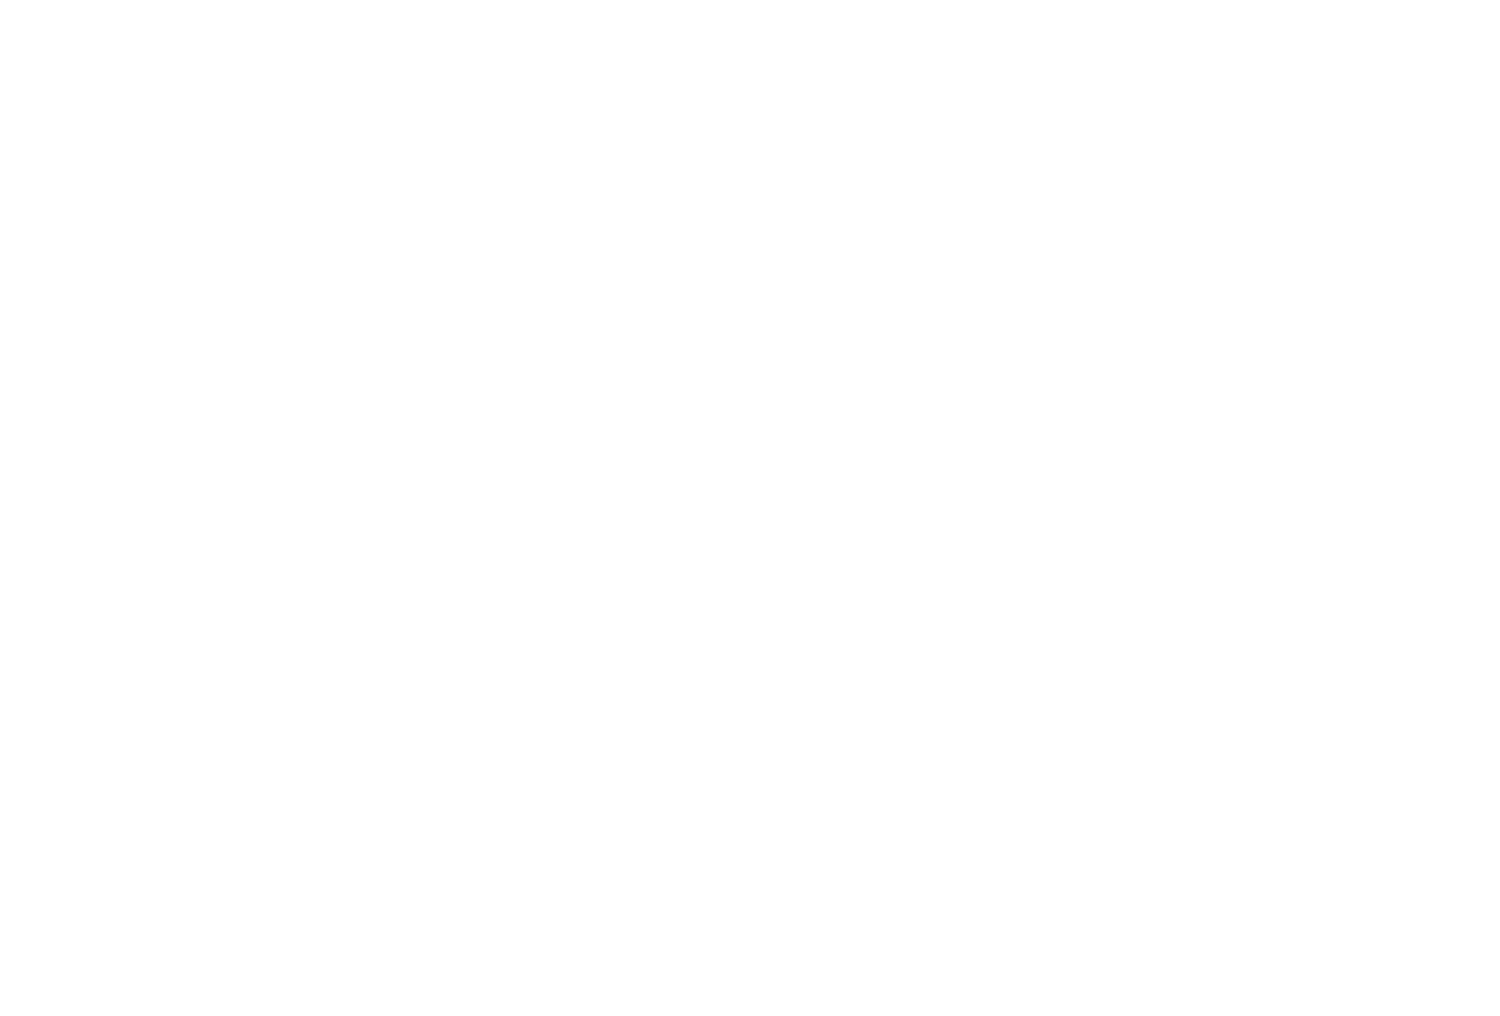 Lorna J Empress of Alchemy